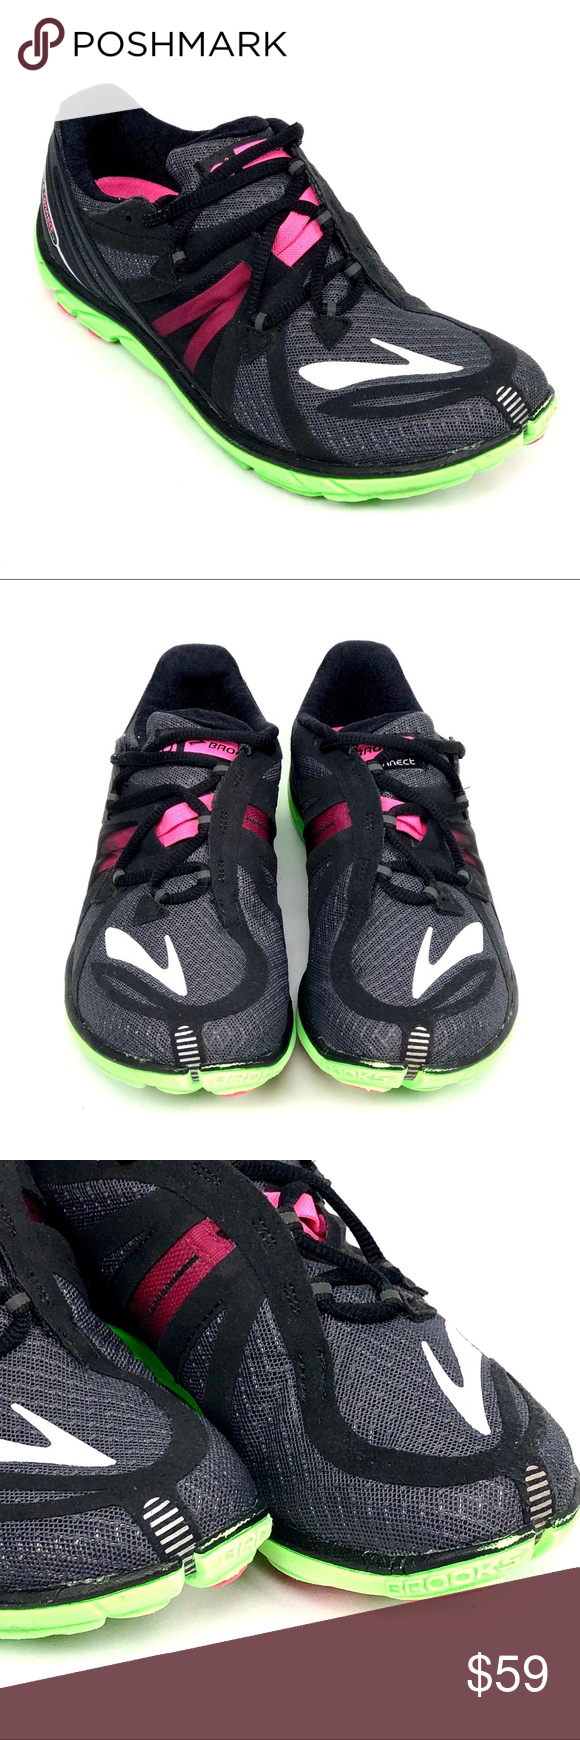 838d18e7cdd Brooks Pure Connect Running Shoes 7.5 Pink Green Women s Brooks  PureConnect2 Lightweight Running Shoes Size